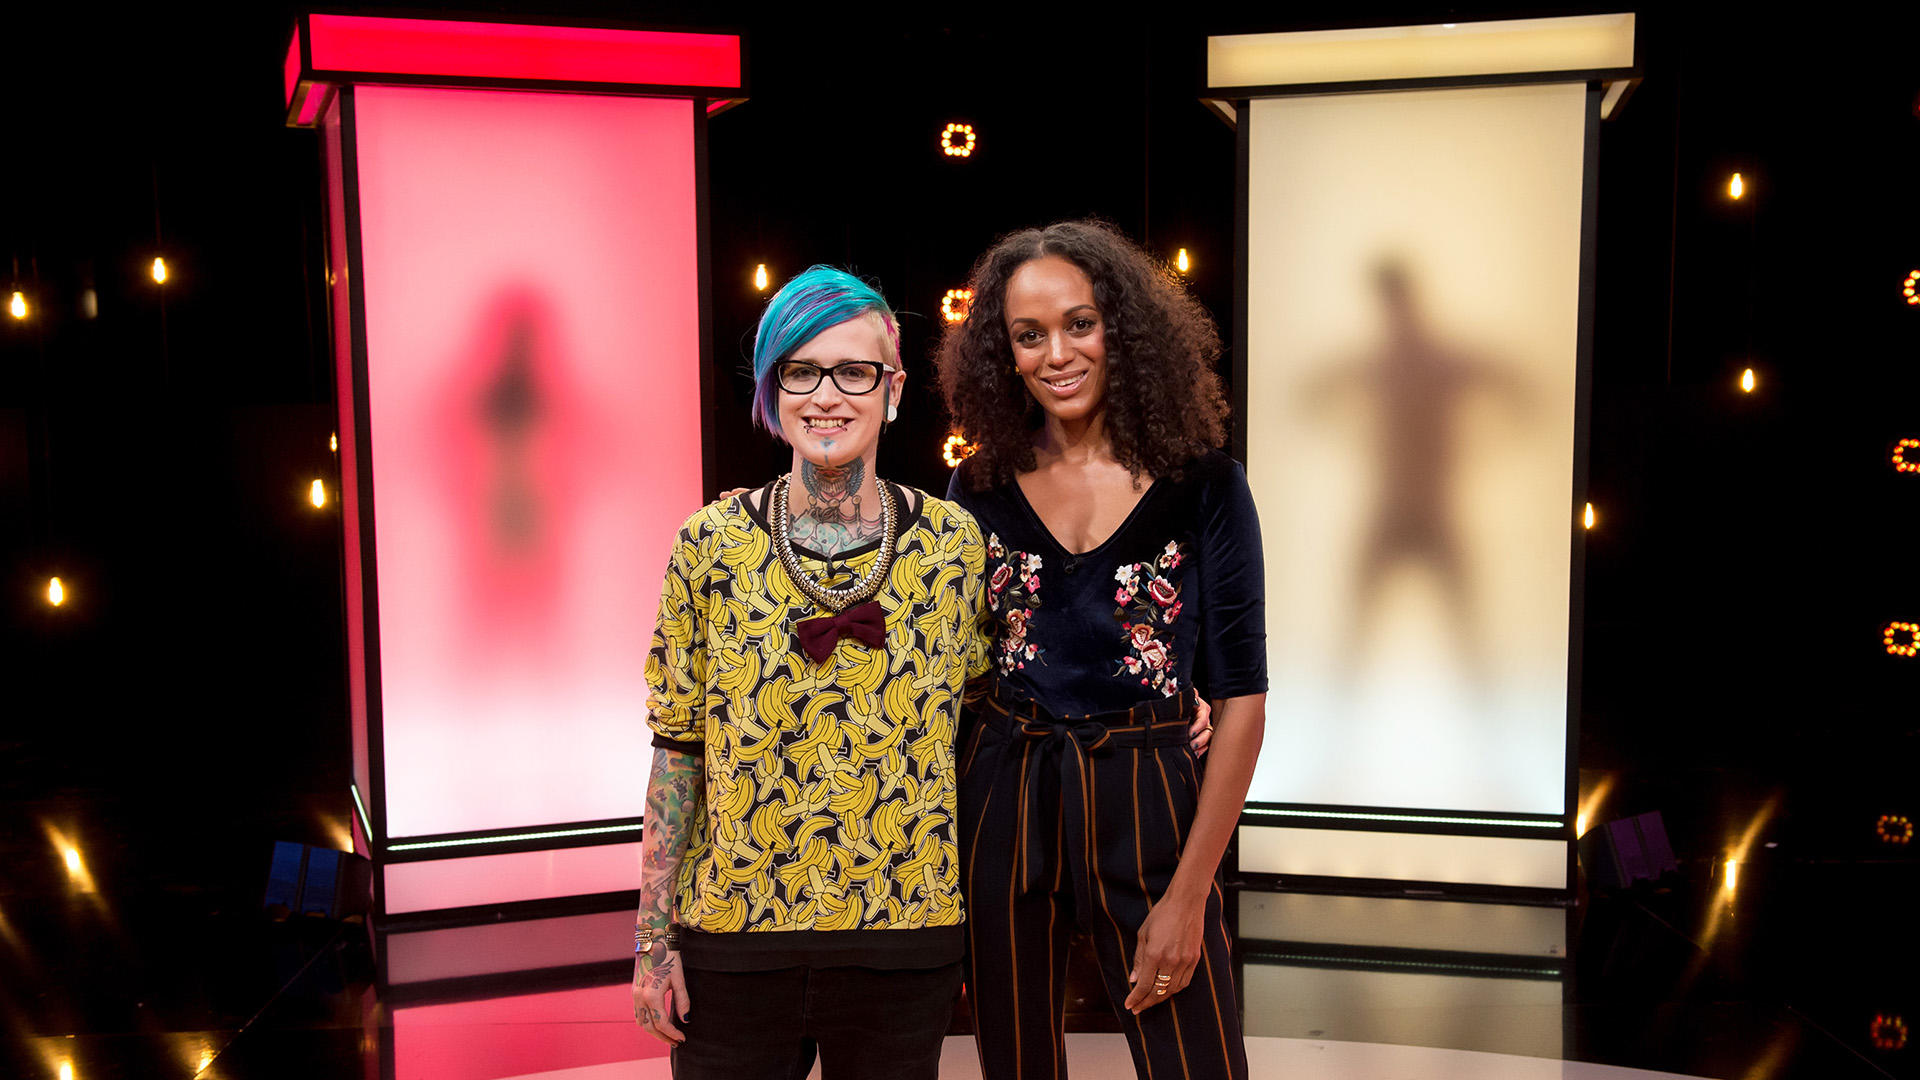 Naked Attraction - Dating hautnah auf RTL2 am 04.05.2020